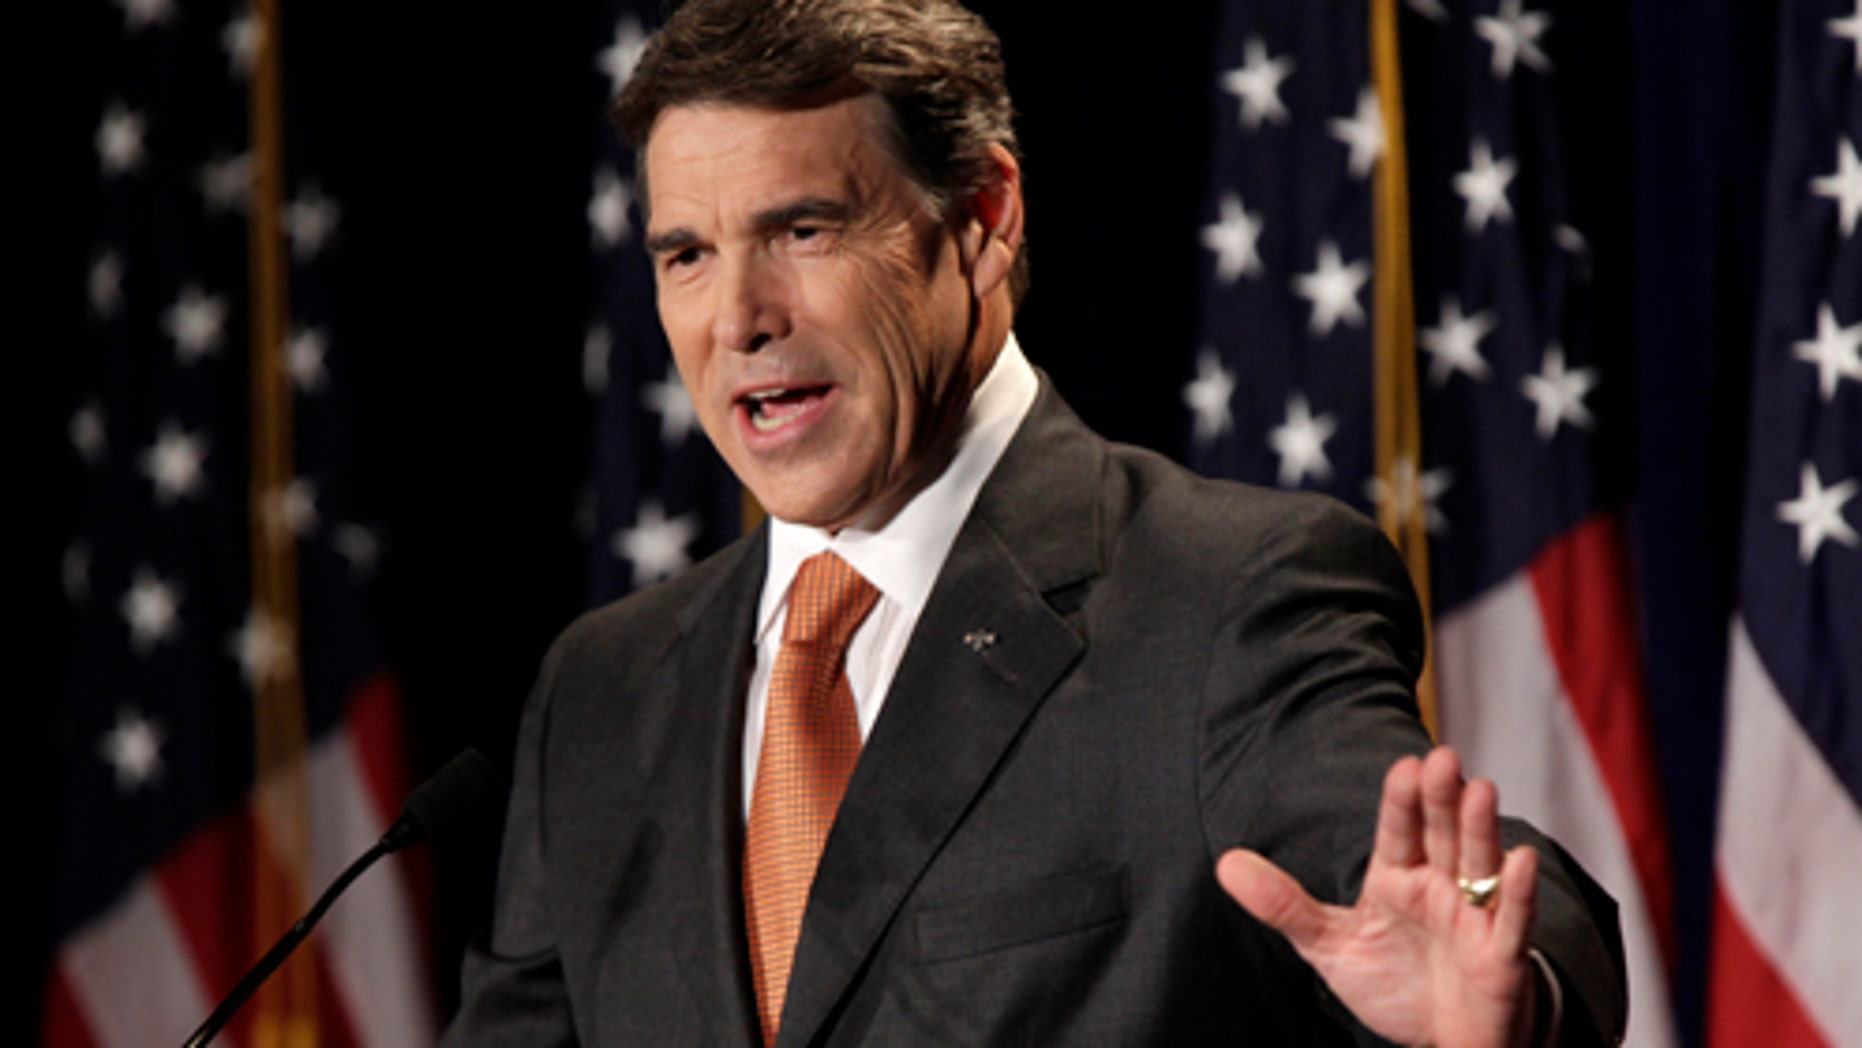 AUG. 13:  Texas Gov. Rick Perry speaks during his announcement that he will run for the Republican presidential nomination in Charleston, South Carolina. (Photo by Richard Ellis/Getty Images)